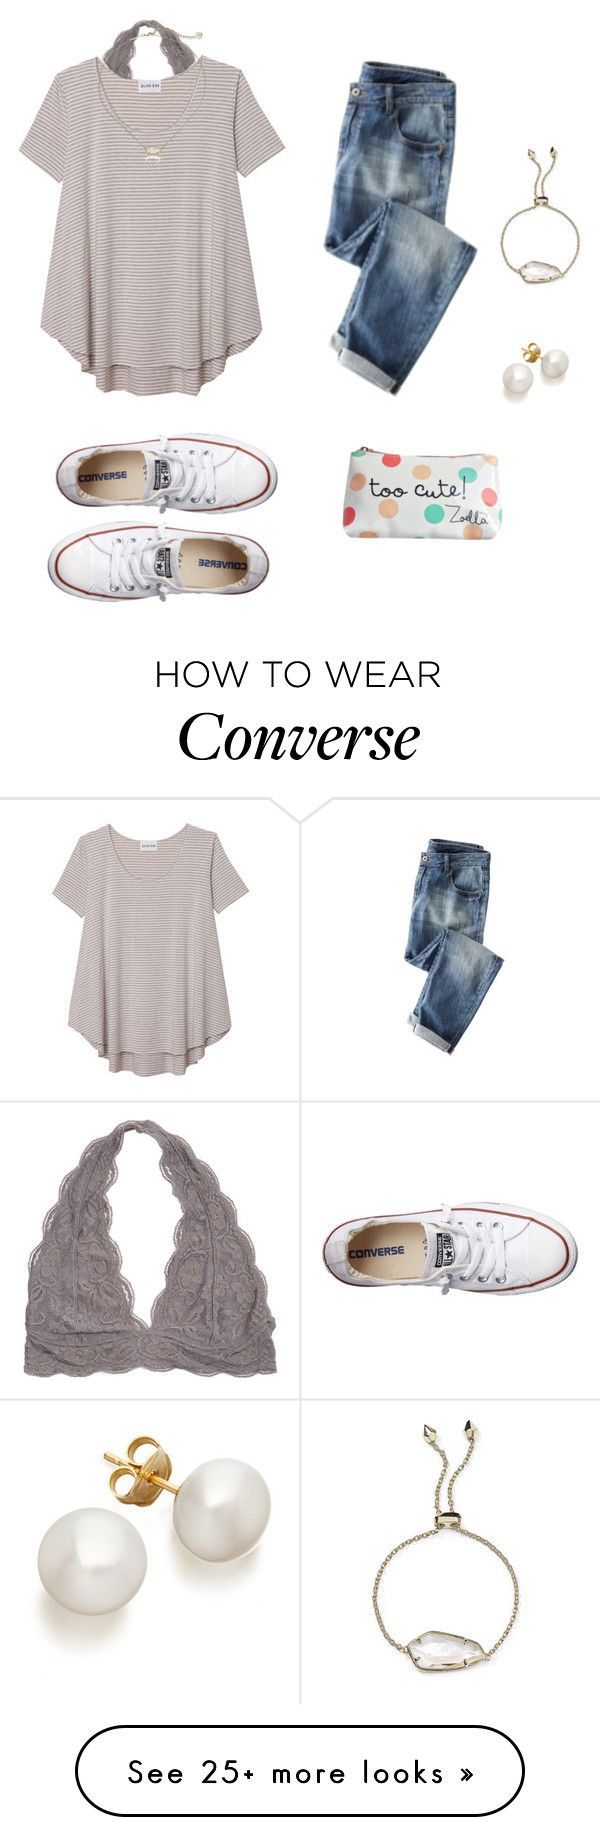 """""""⚪️⚫️"""" by avazumpano on Polyvore featuring Olive + Oak, Converse and Kendra Scott"""